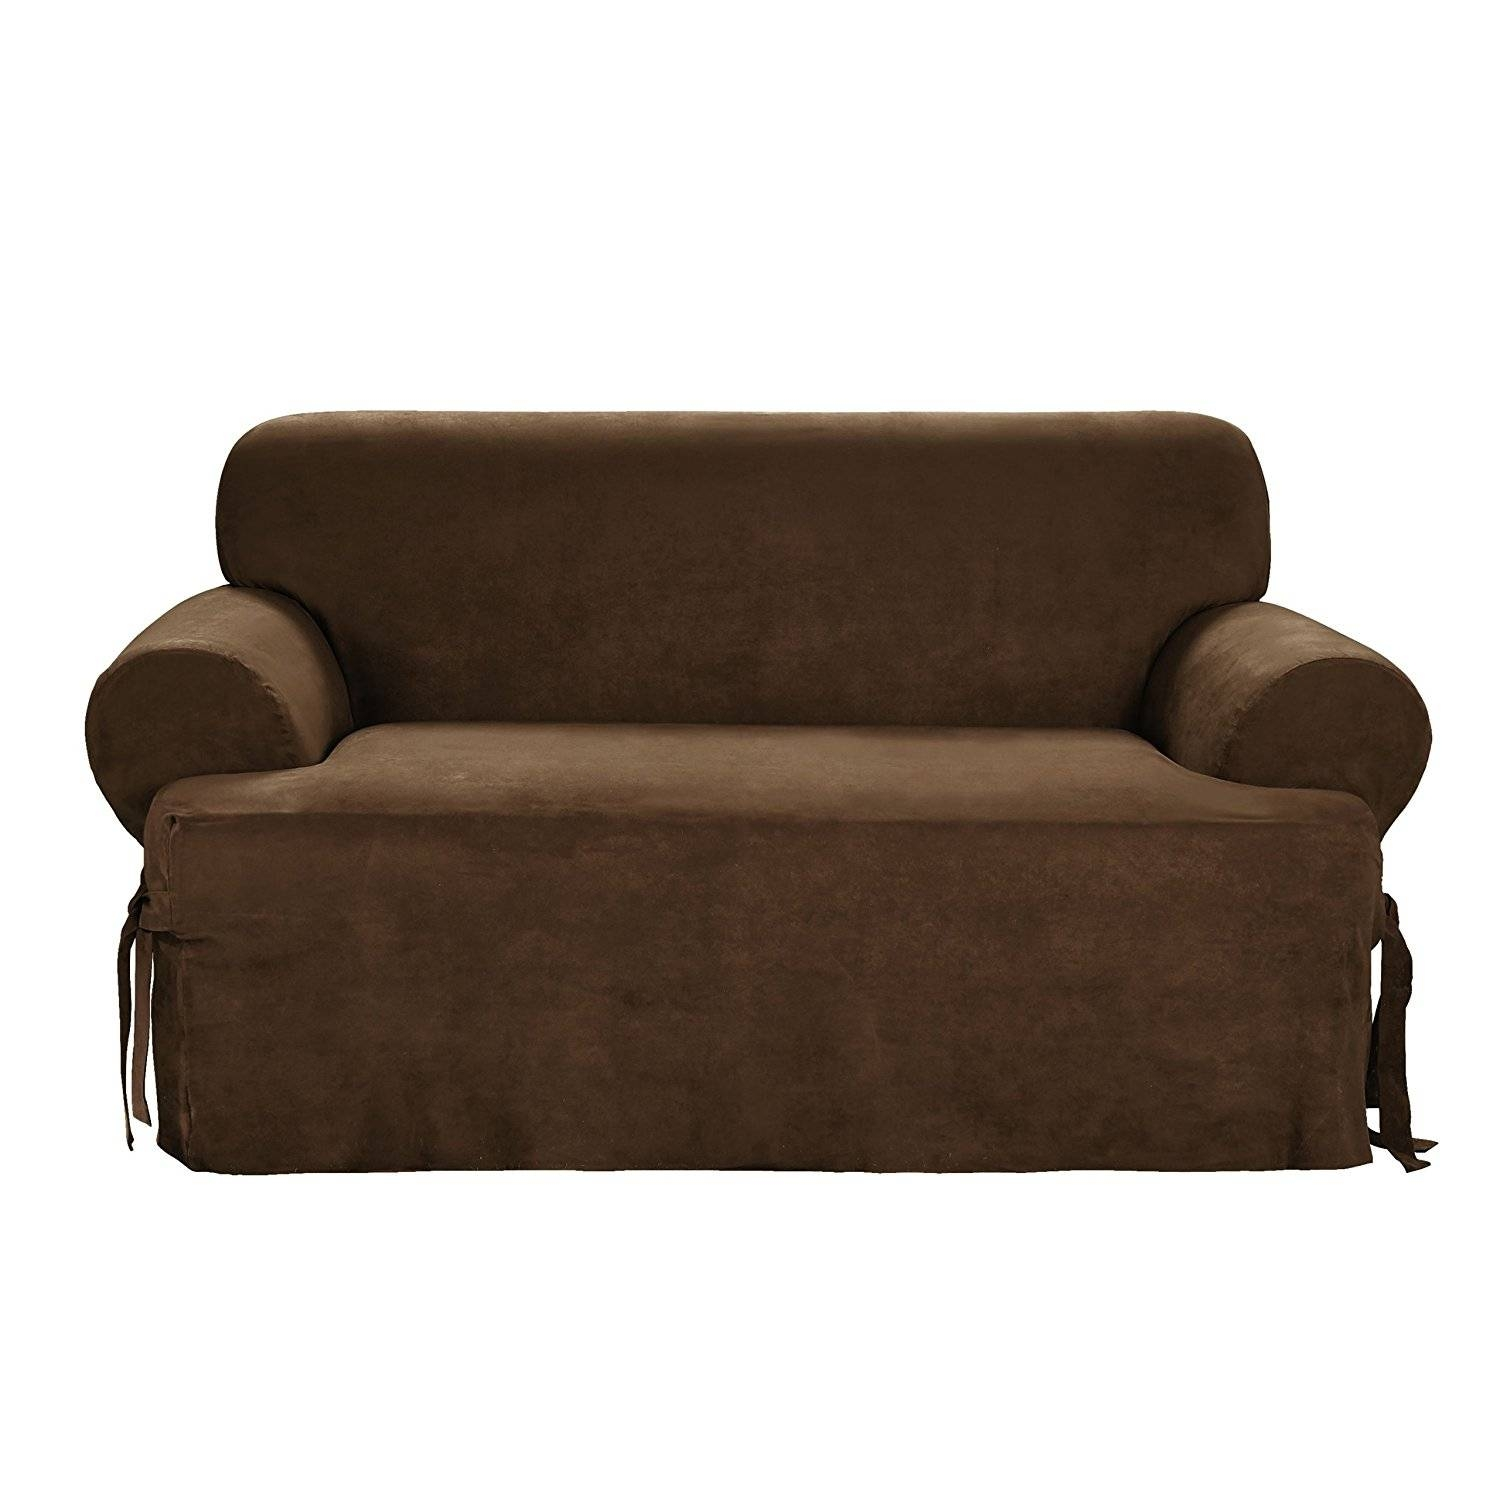 Furniture: Classy Design Of Sure Fit Sofa Slipcovers For Inspiring inside 2 Piece Sofa Covers (Image 11 of 30)